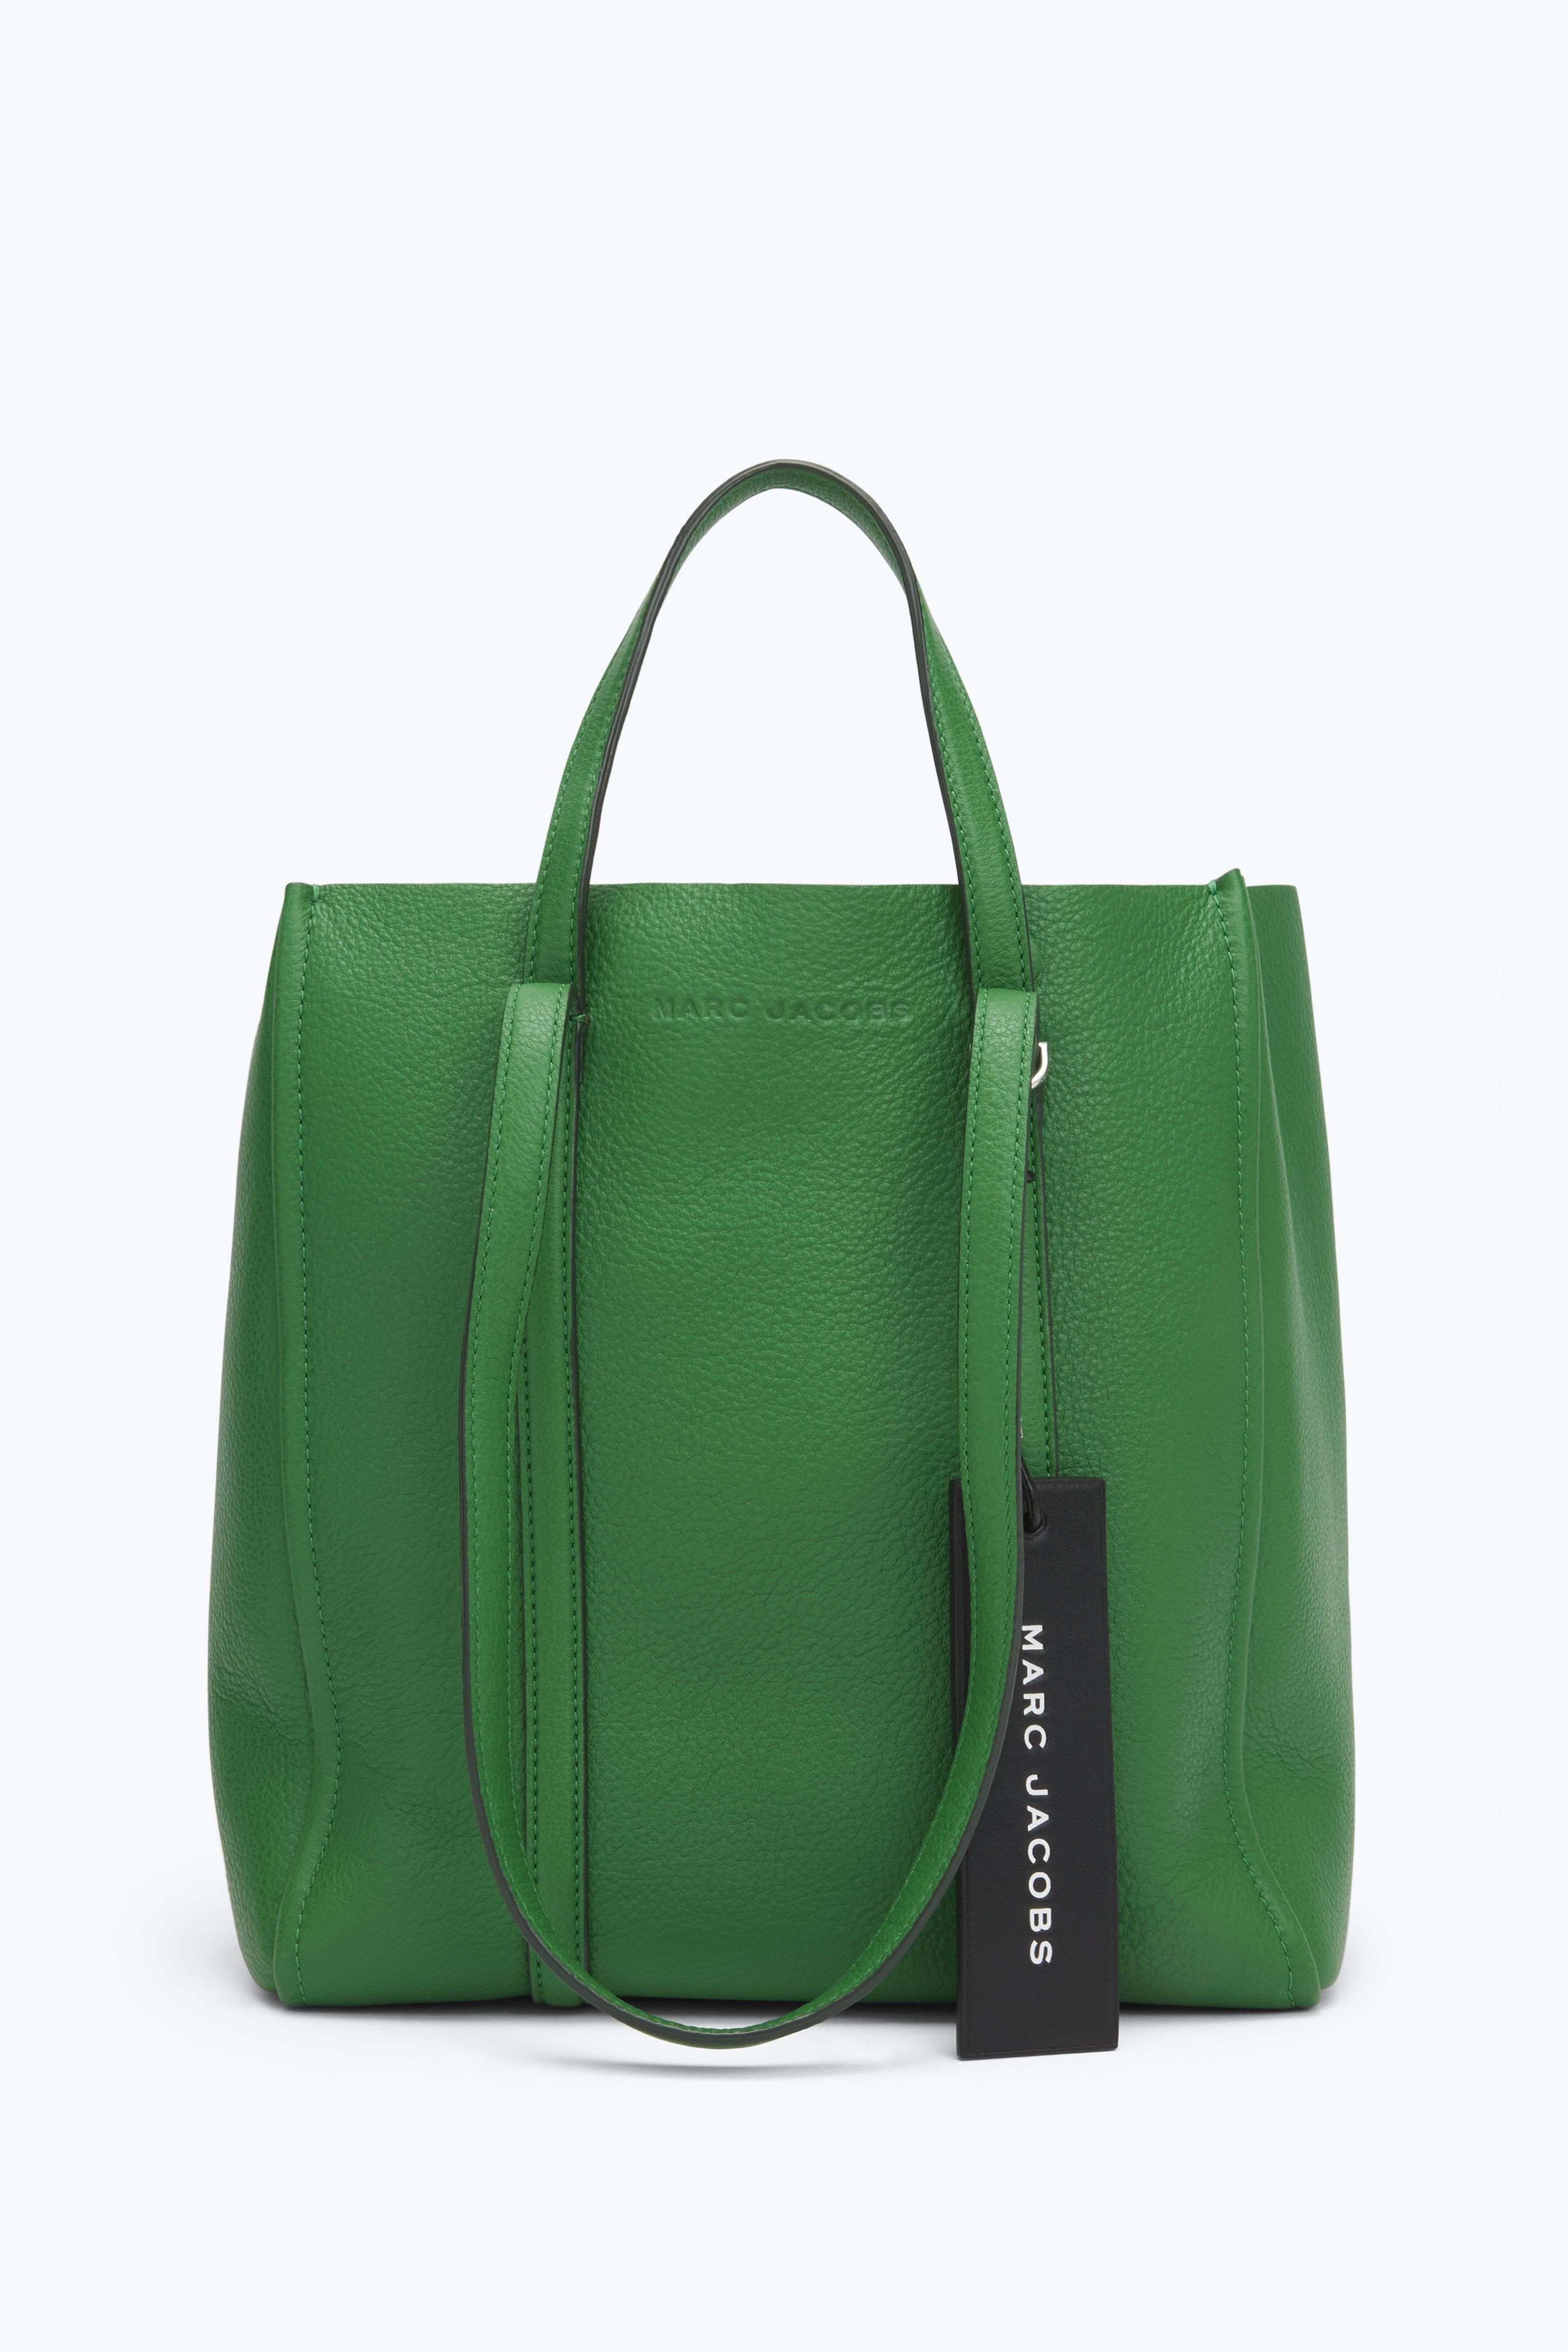 039b19162b18 MARC JACOBS The Tag Tote.  marcjacobs  bags  shoulder bags  hand bags   leather  tote